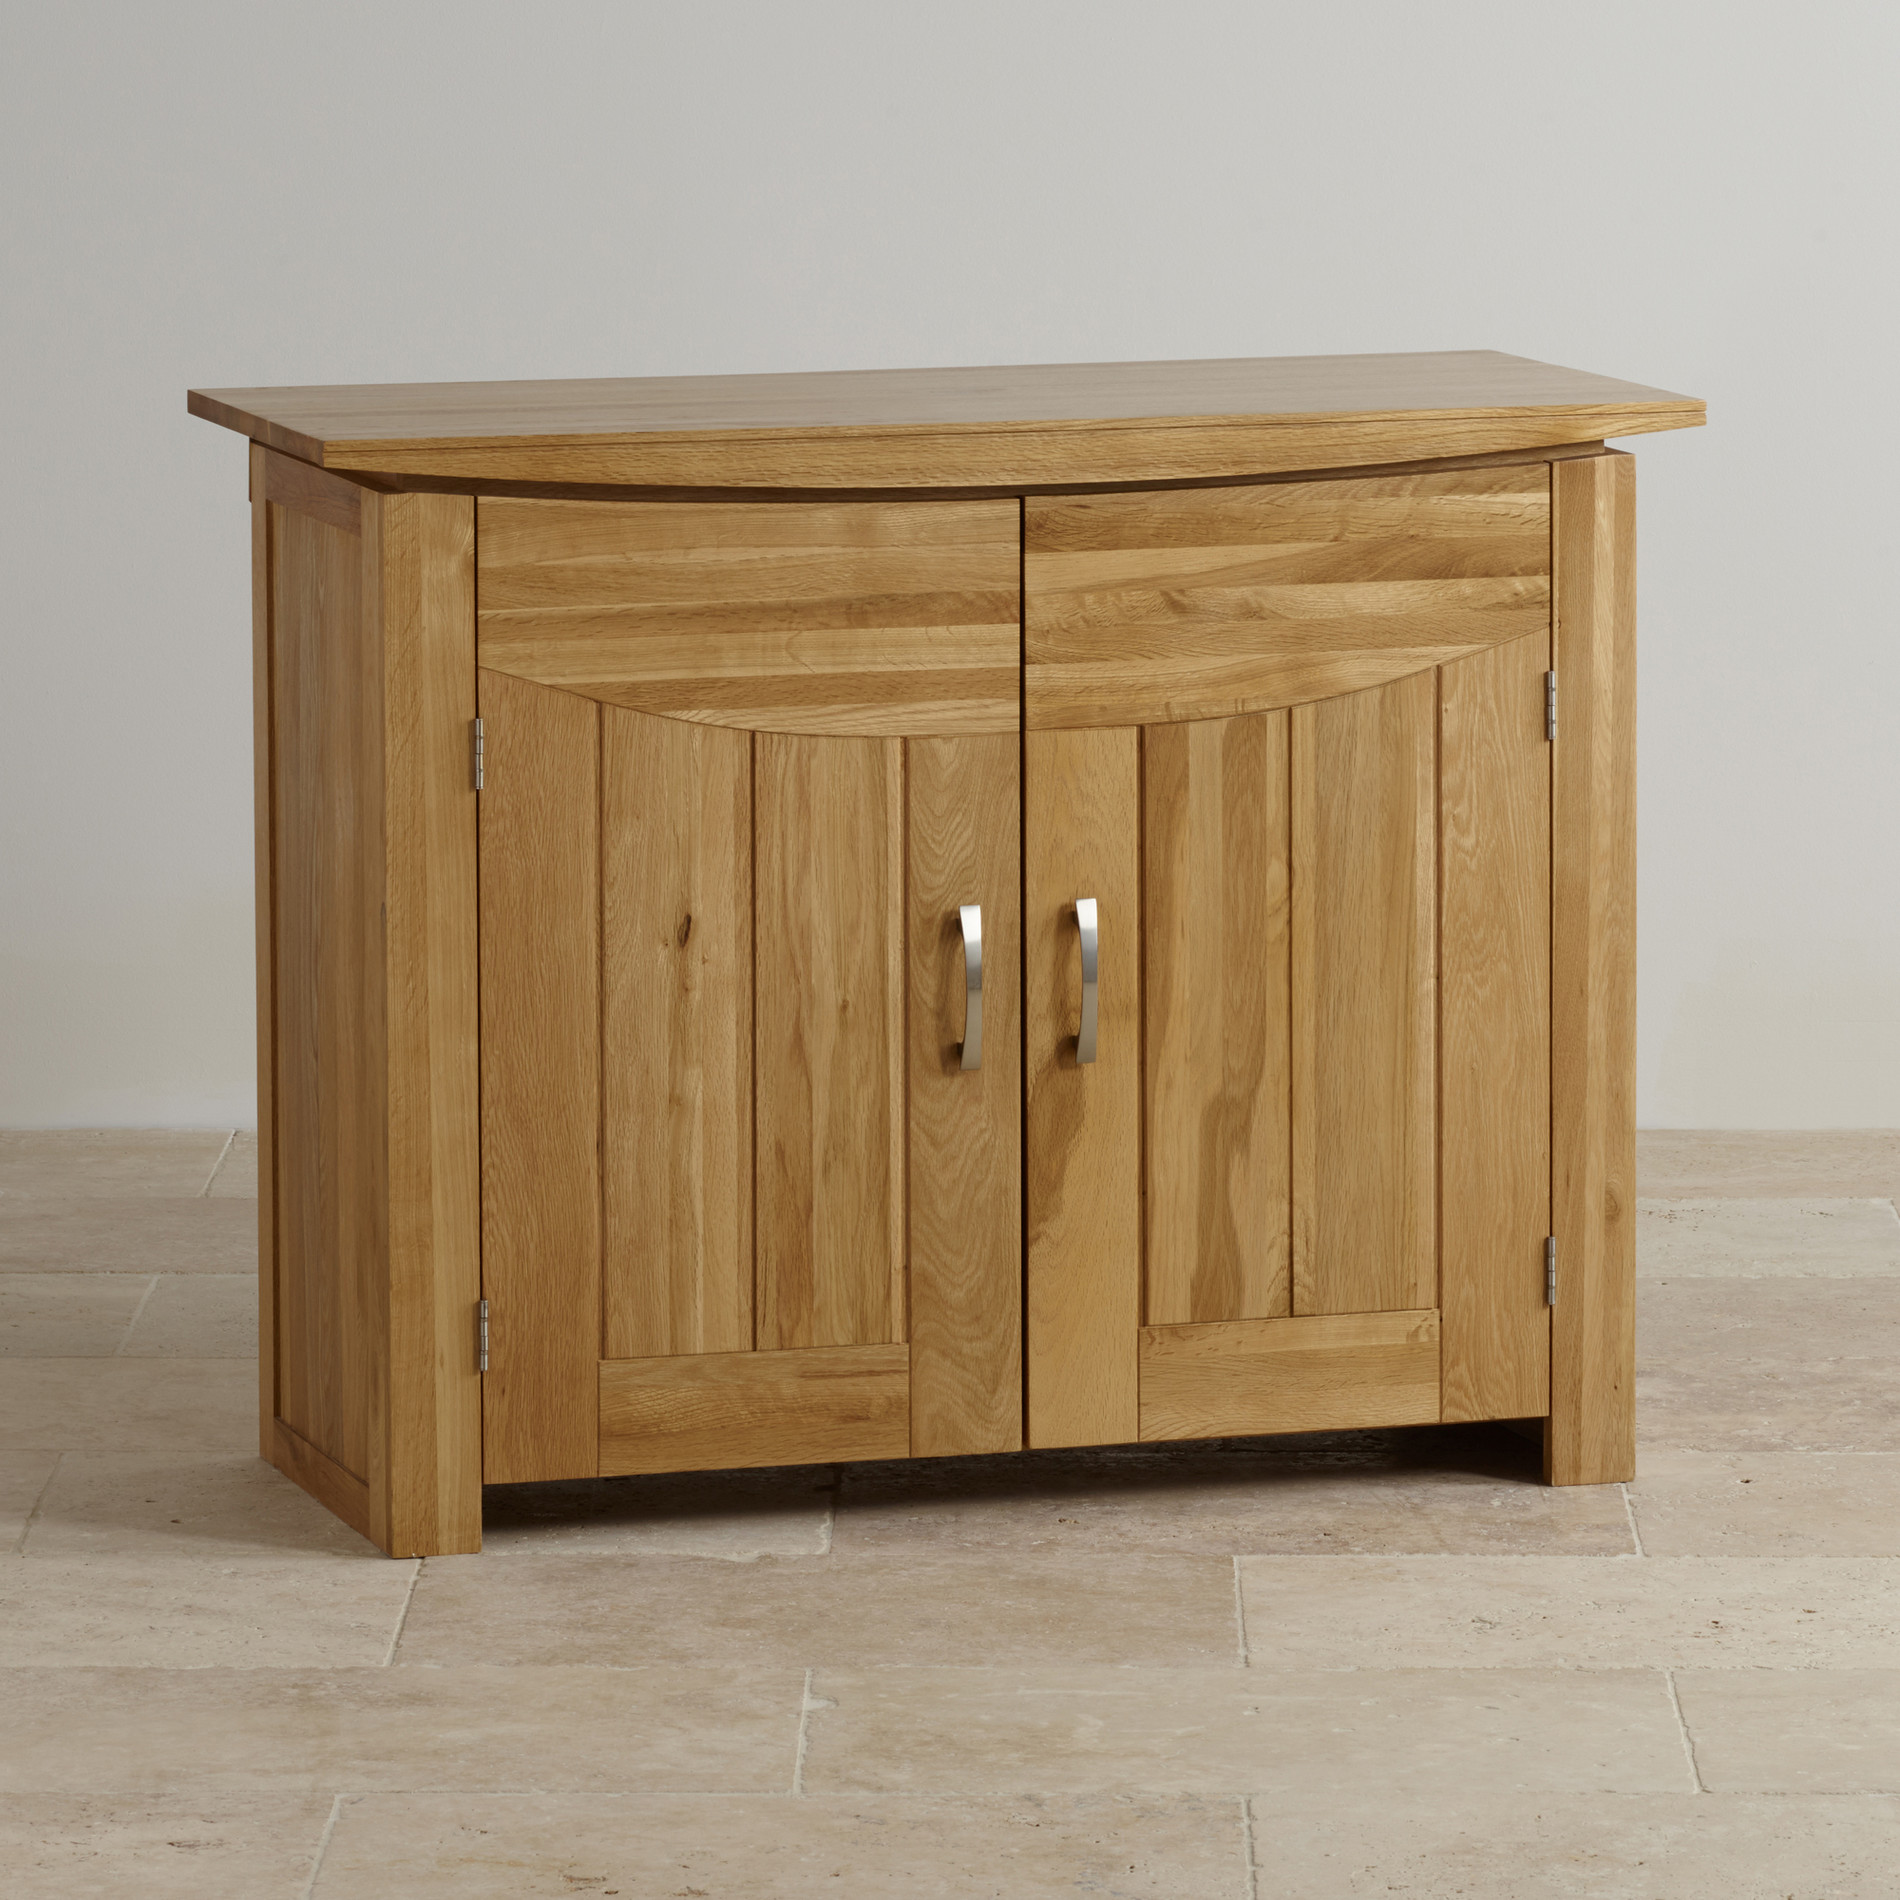 Tokyo small sideboard in natural solid oak oak furniture for Oak furniture land